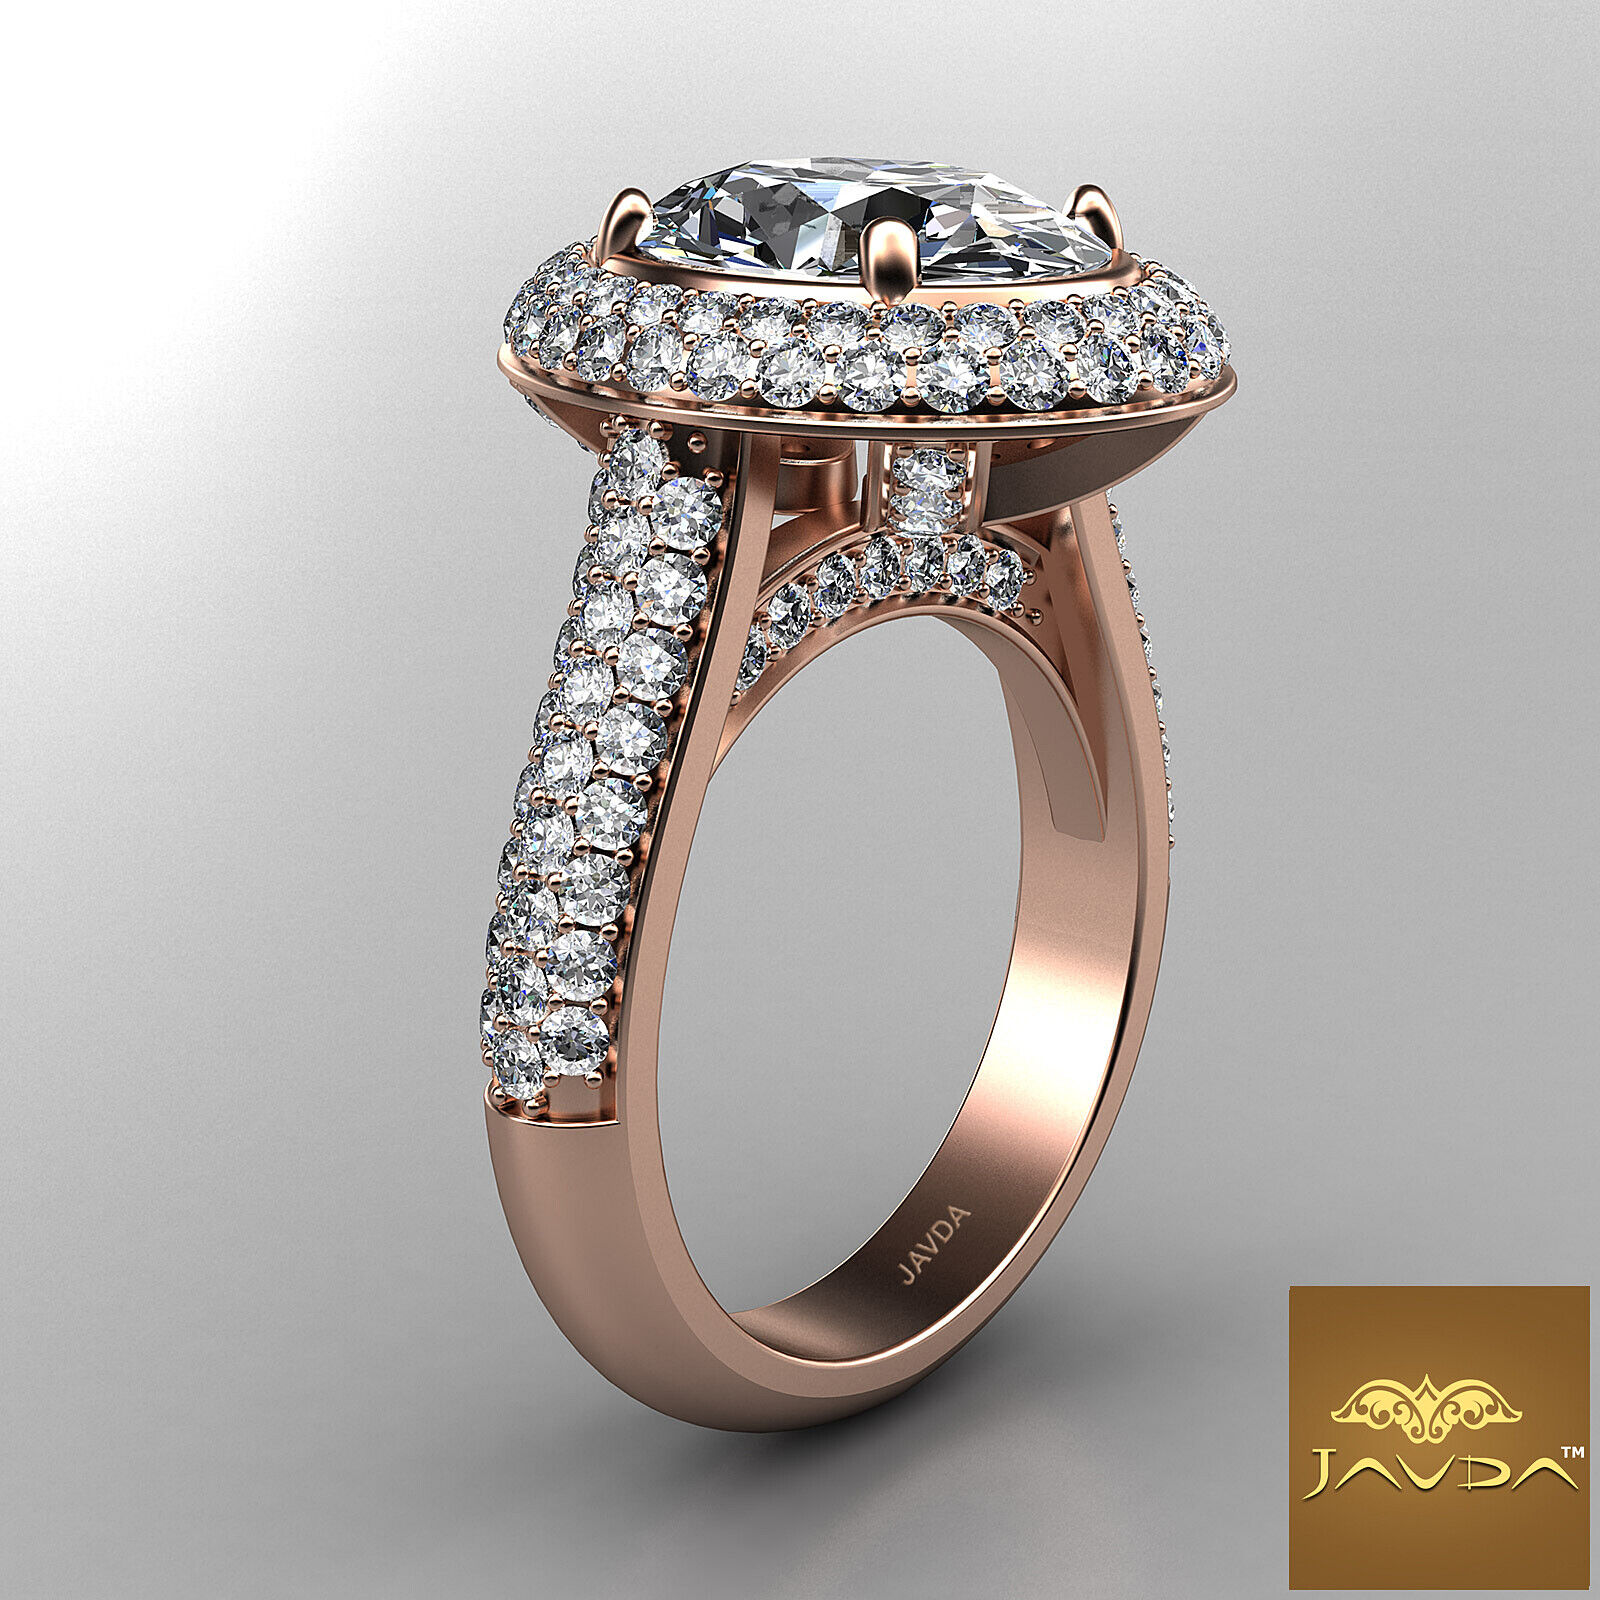 3 Row Shank Double Halo Oval Diamond Engagement Prong Setting Ring GIA F VS1 3Ct 11